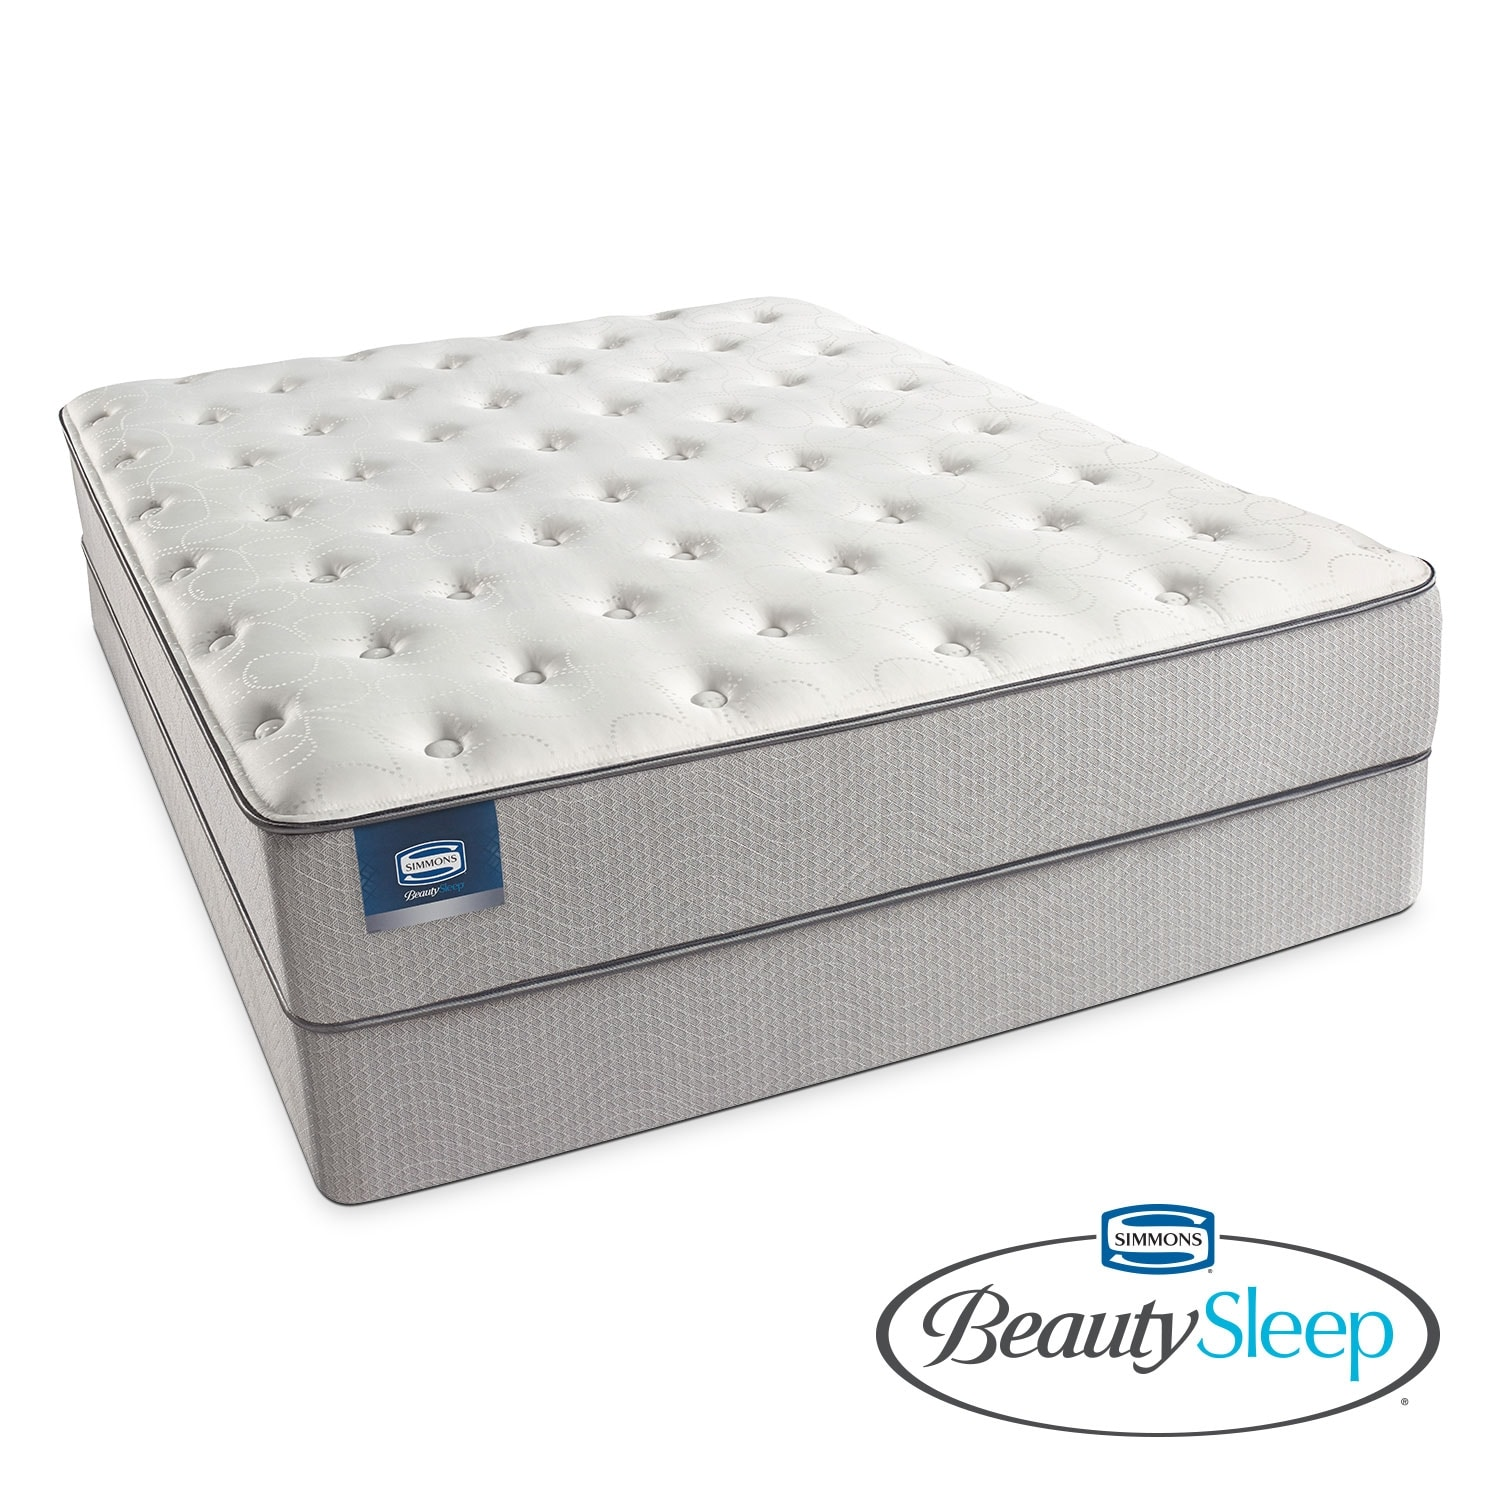 Mattresses and Bedding - Arthur Avenue Plush Twin Mattress/Foundation Set